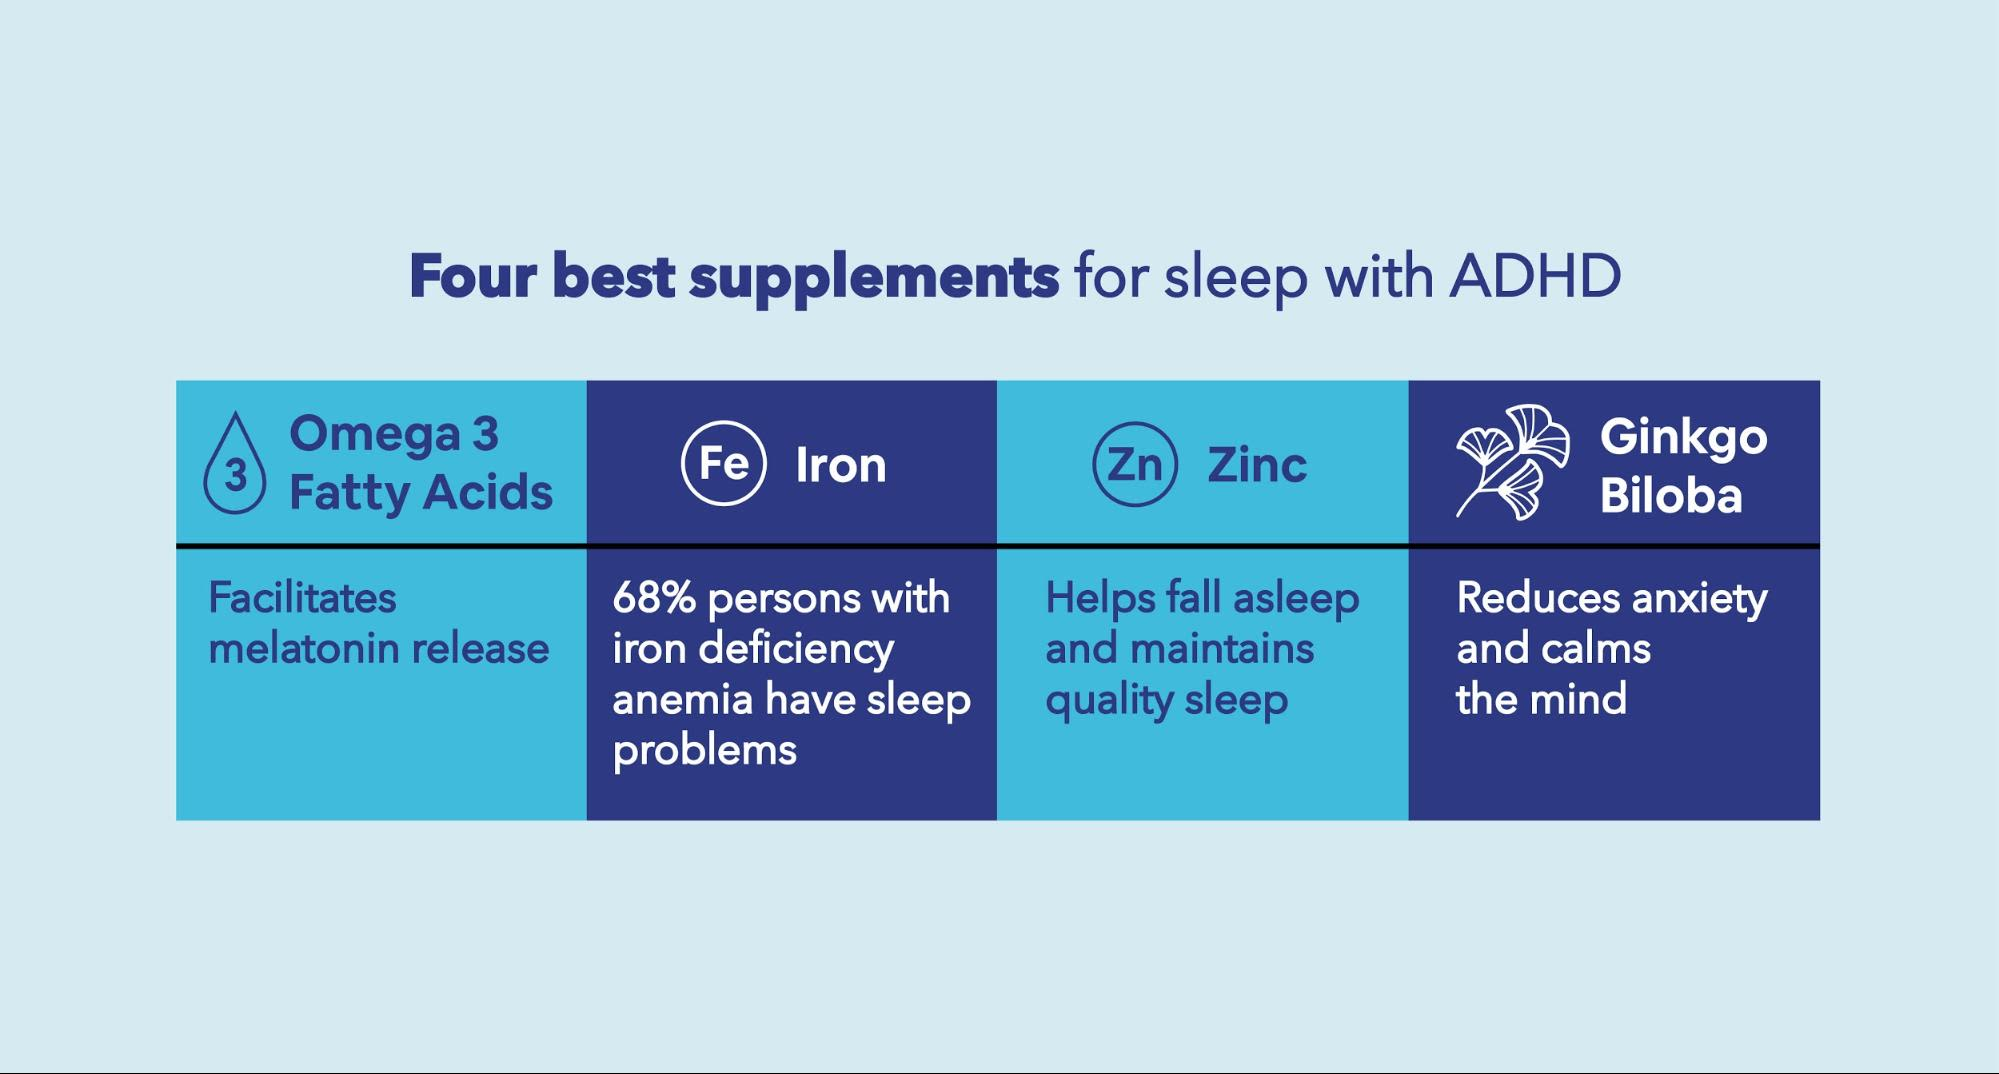 Four best supplements for sleep with ADHD.